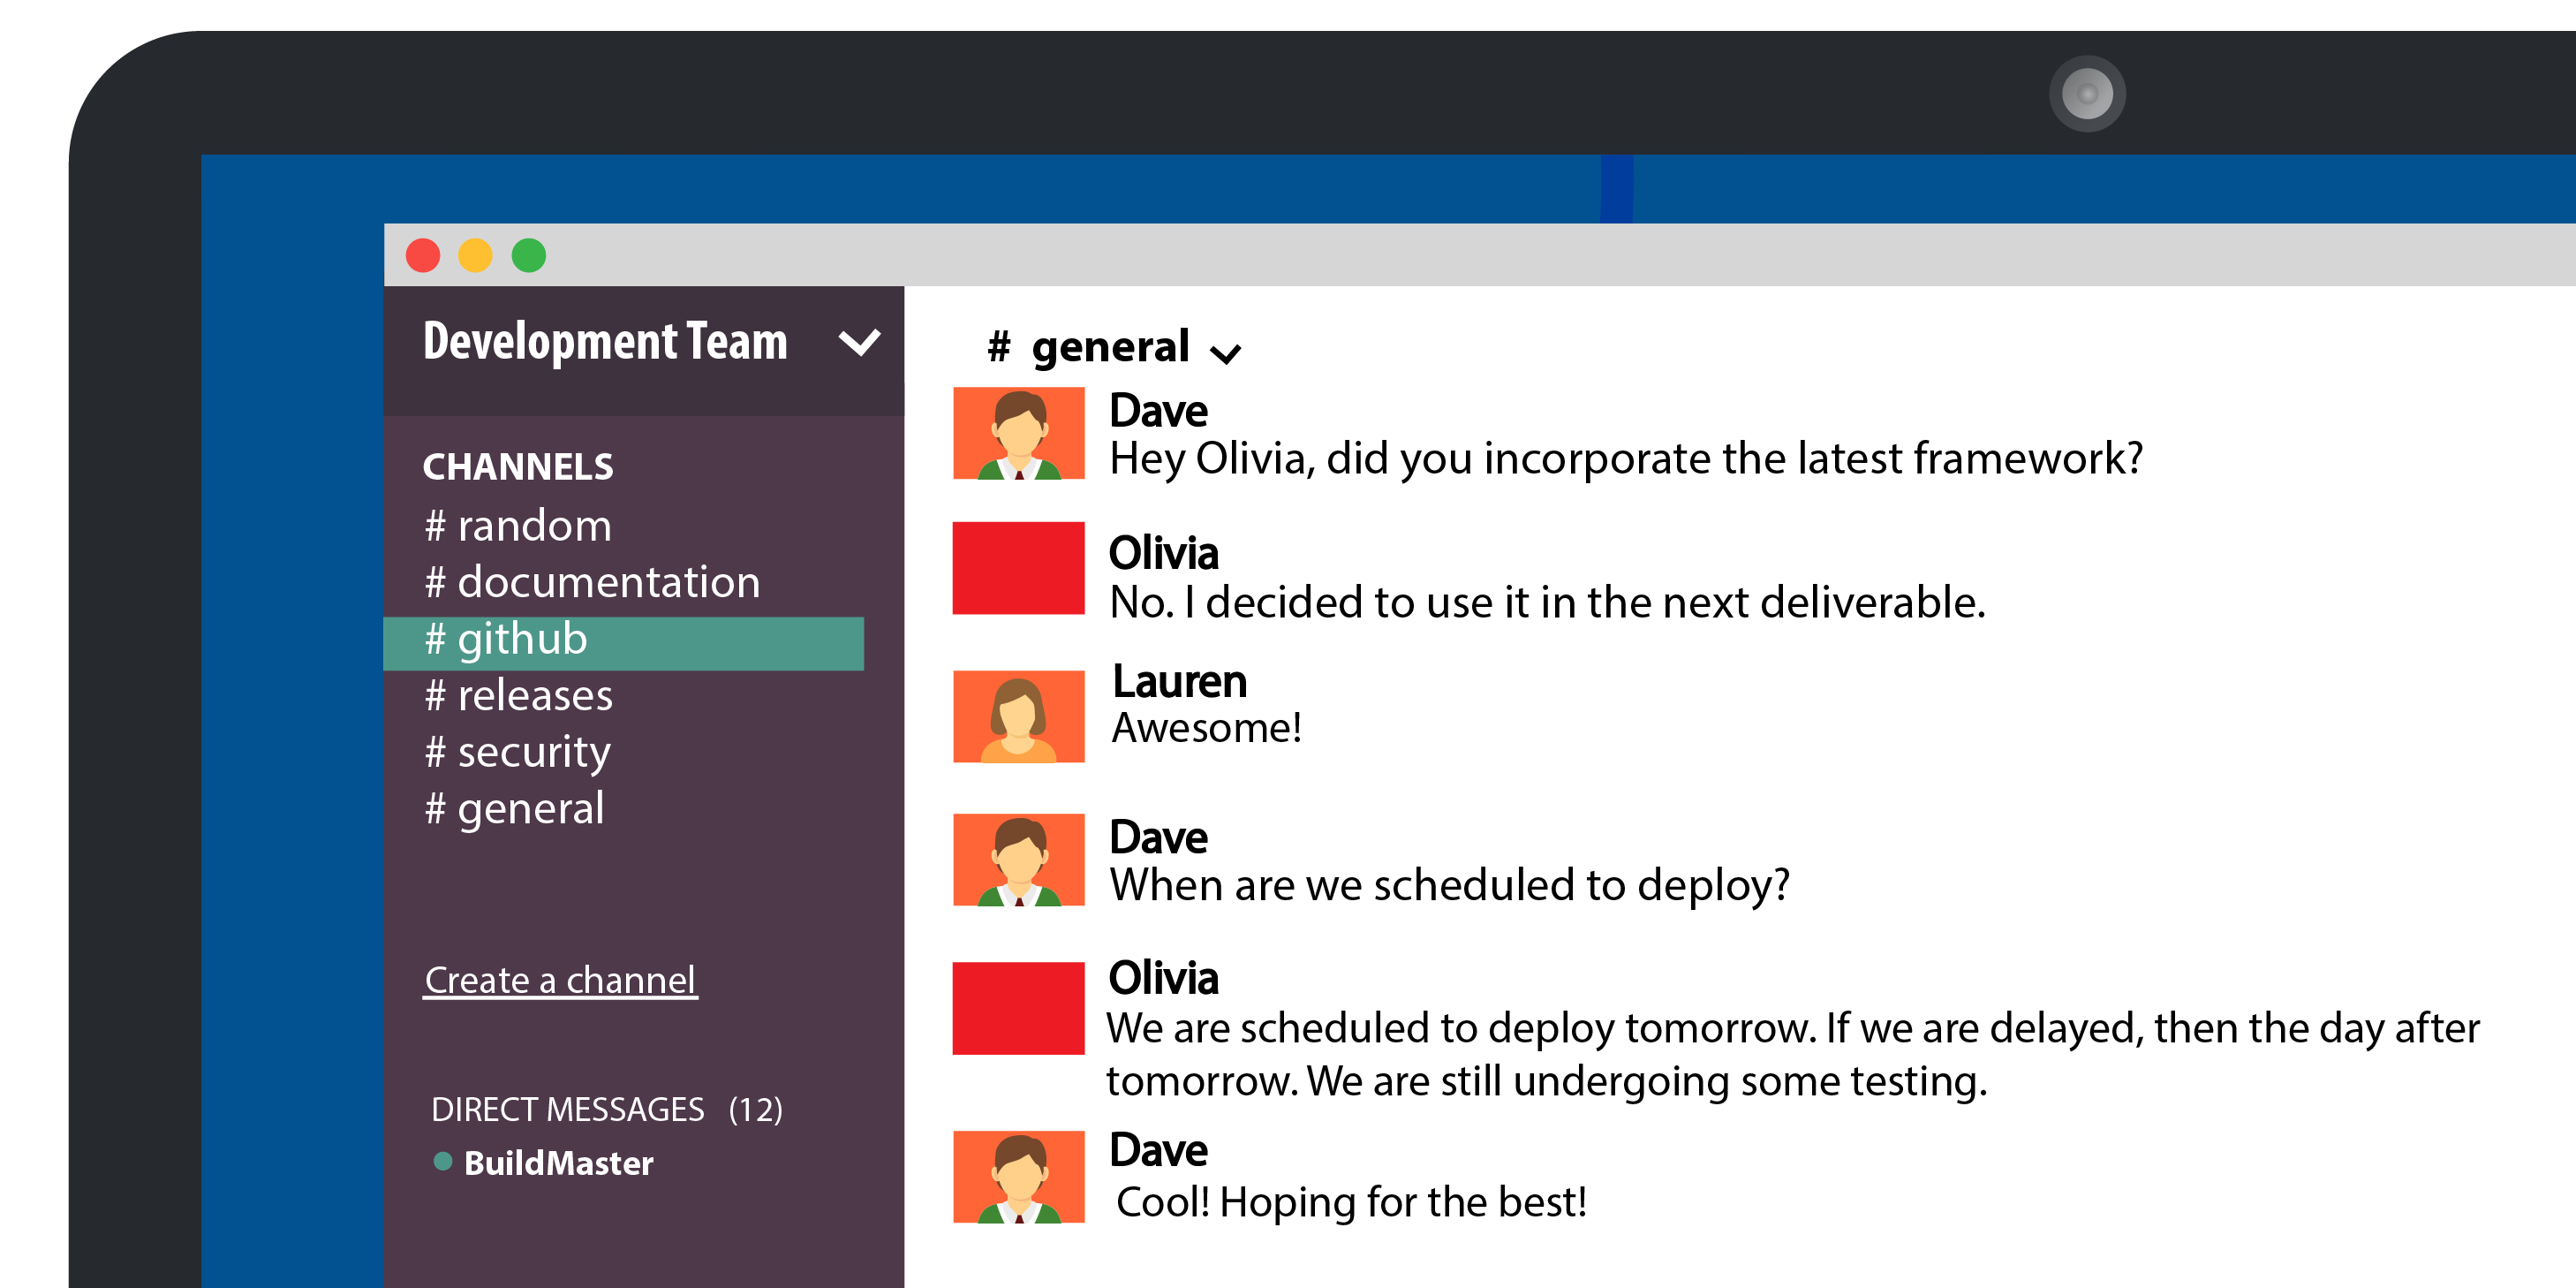 slack channel depicting conversation between teams about a deployment schedule